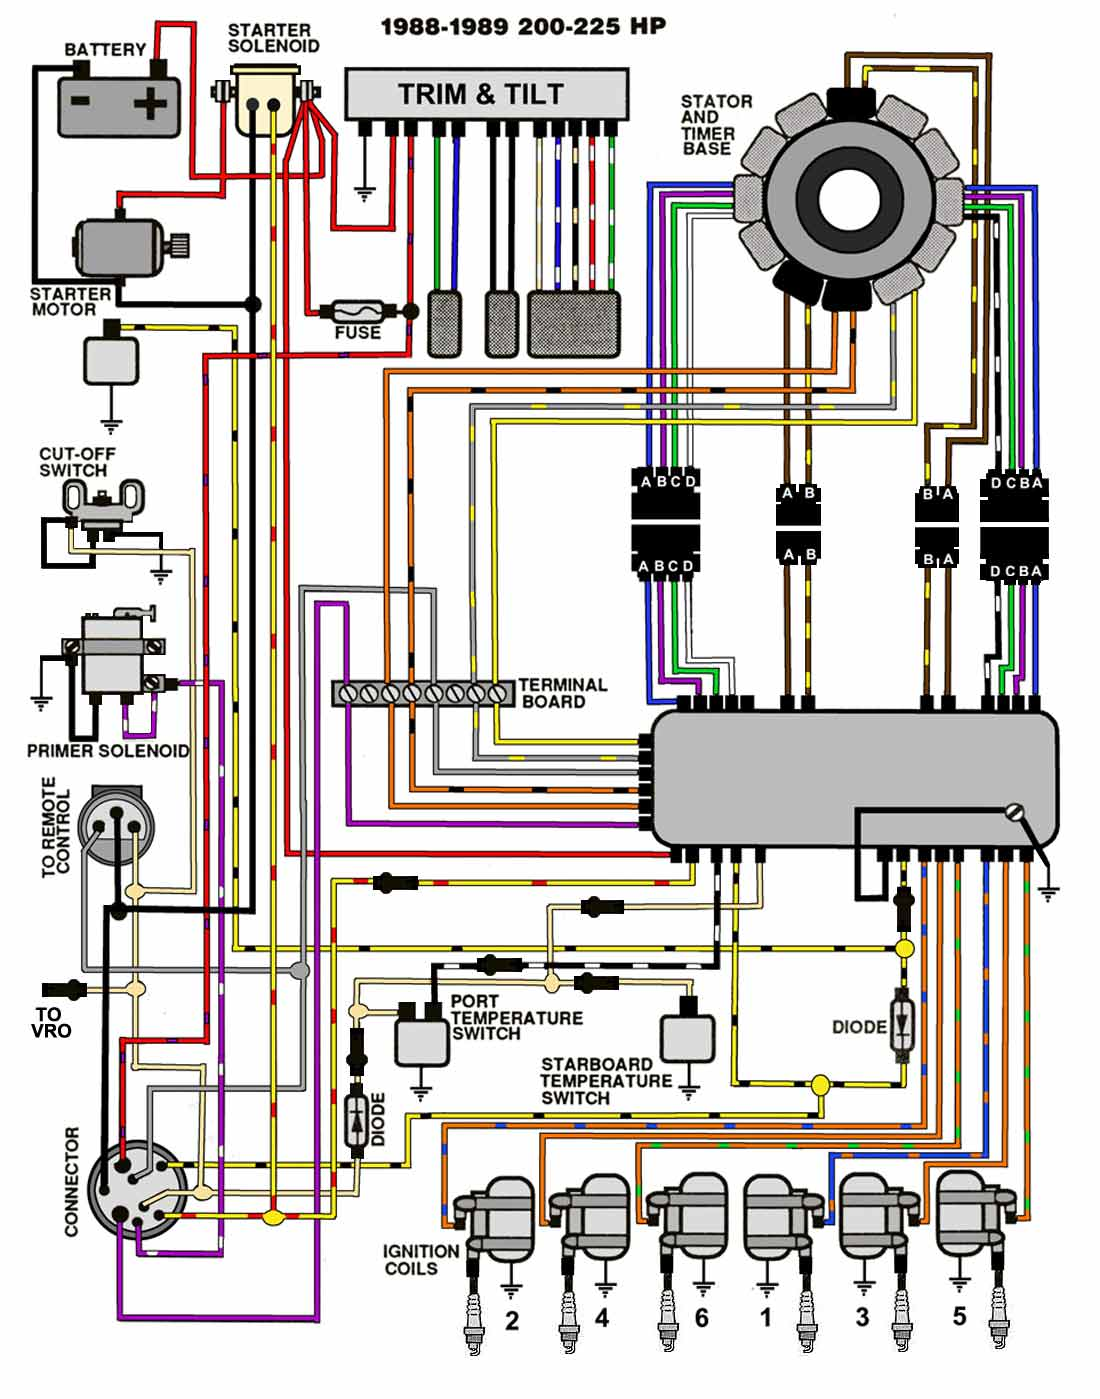 1988_89_200_225 johnson outboard wiring diagram wiring diagram byblank  at crackthecode.co